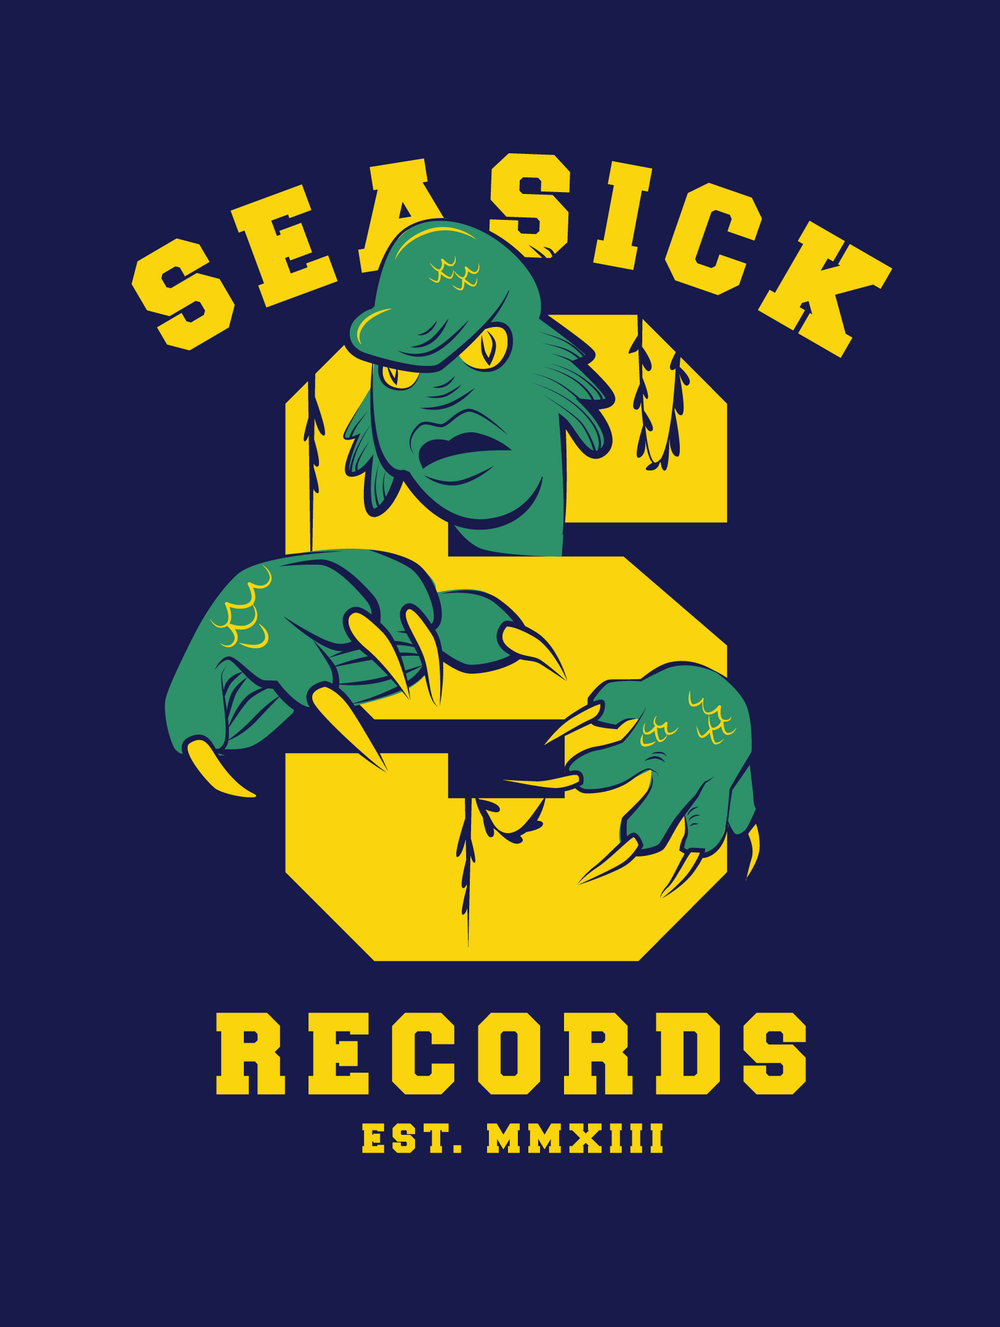 Seasick's unofficial mascot, a certain creature from lagoon-esque upbringing, has appeared in many forms on various pieces of merchandise and promotional materials since the store's opening in 2013.